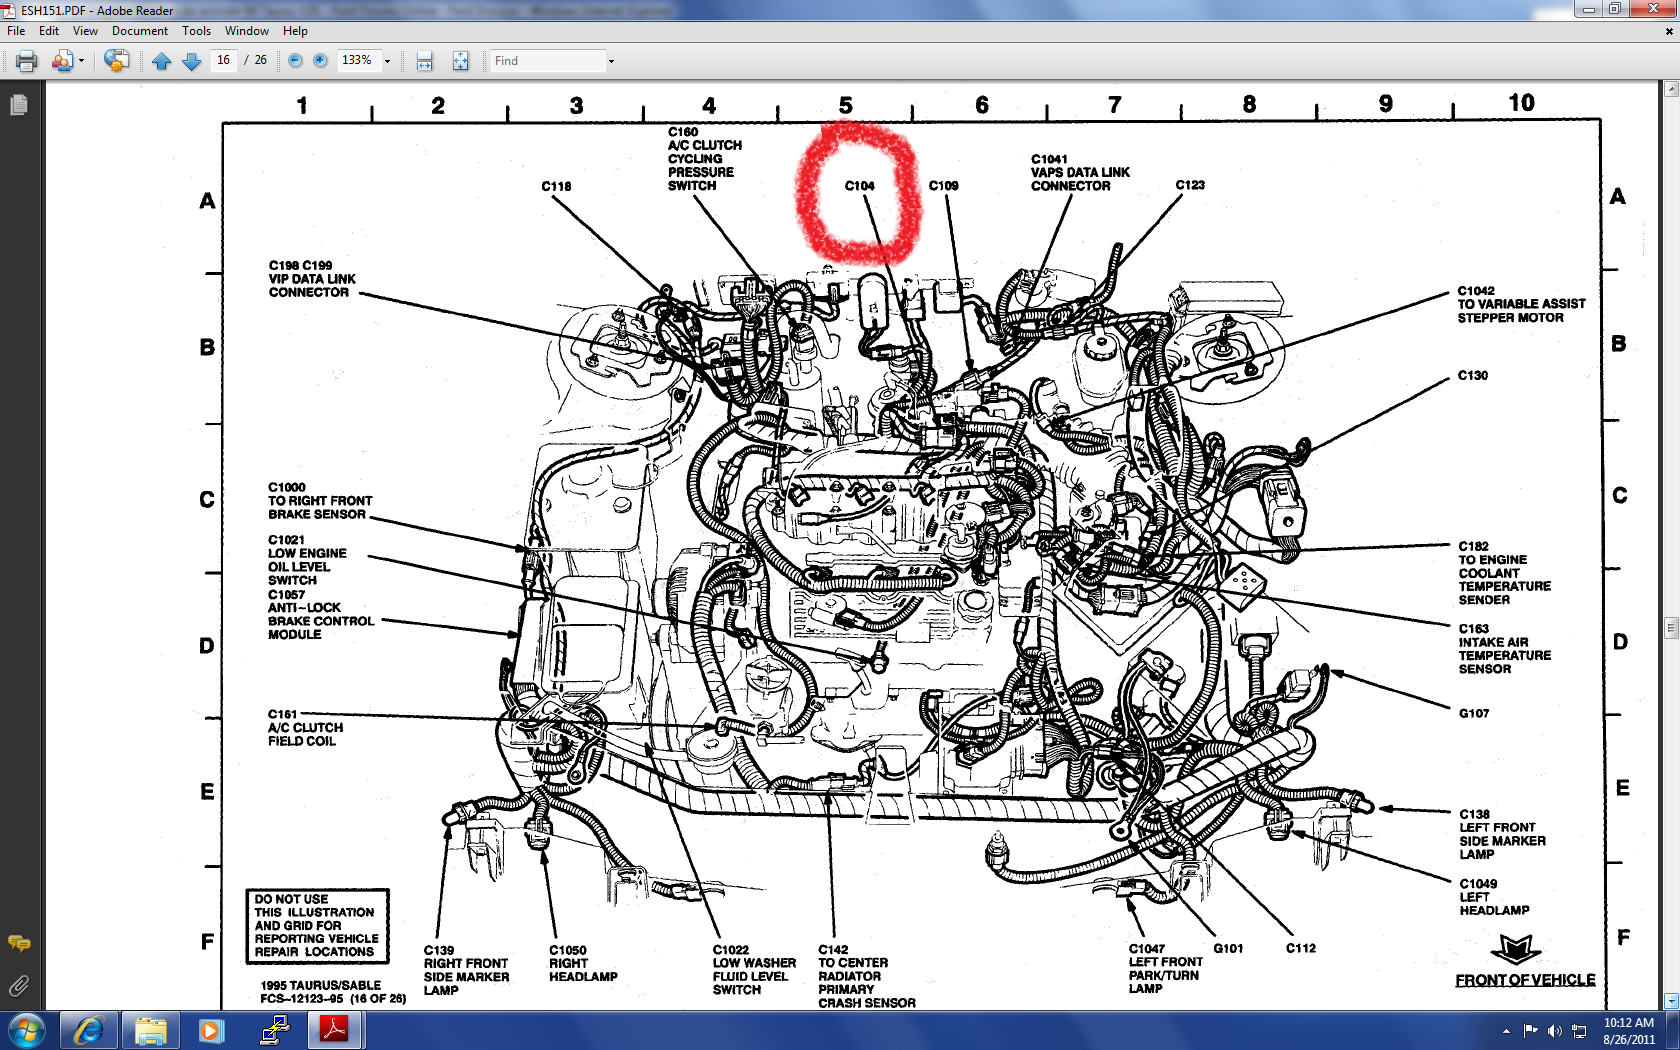 ford ranger cooling system diagram go wiring diagram 1999 Ford Ranger 3 0 Cooling System Diagram 1997 ford explorer engine coolant system diagram wiring diagrams hubs 1999 ford windstar cooling system diagram ford ranger cooling system diagram